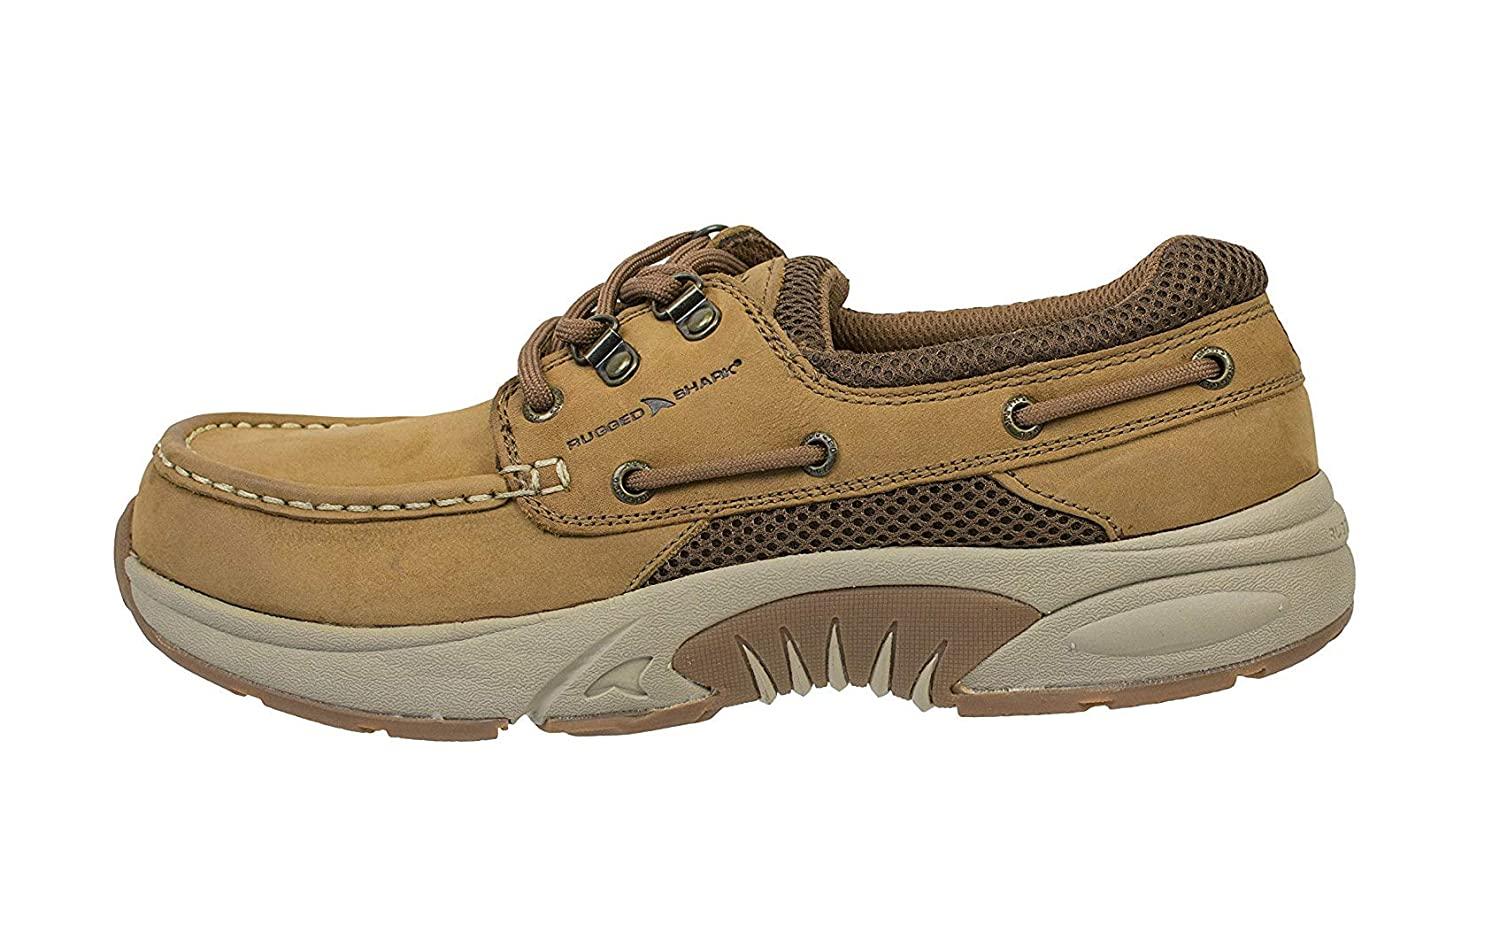 4bc3c9b6 Amazon.com | Rugged Shark Atlantic Mens Boat Shoes, Premium Leather and  Comfort, Copper Brown, Size 8 to 13 | Loafers & Slip-Ons